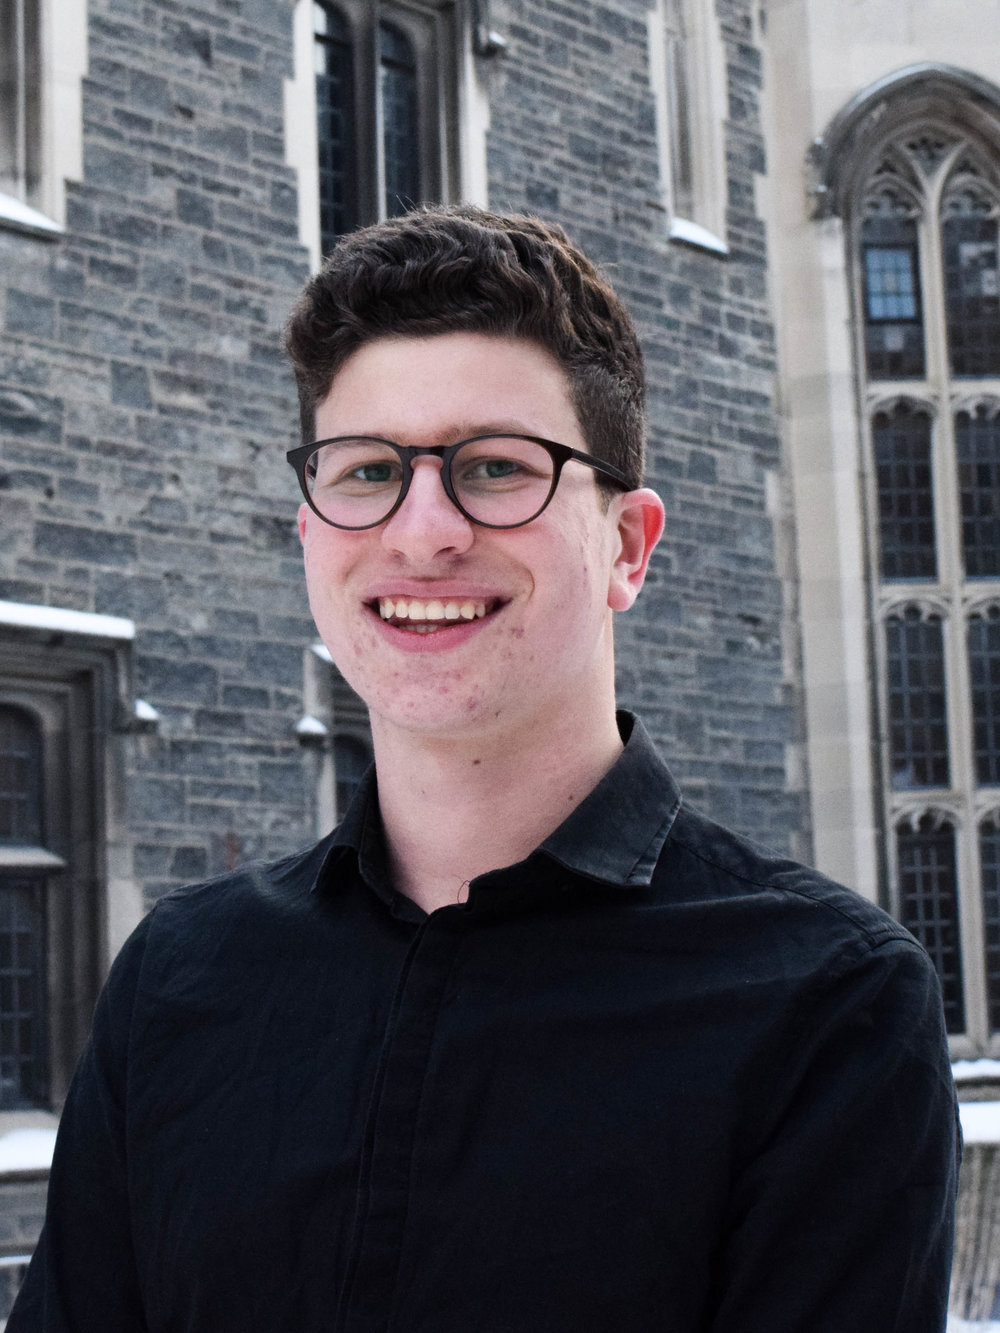 Sammy Lorinc is a first year student at U of T, and one of the first year representatives in the APSS. Coming from a background in cooking and culinary school, Sam now looks forward to applying to the Ethics, Society and Law Program, with a minor in political science. While still fresh to U of T, Sam has quite an interest in political science. As a first year representative, he hopes to help add new perspectives and opinions to the lively debate at the APSS.